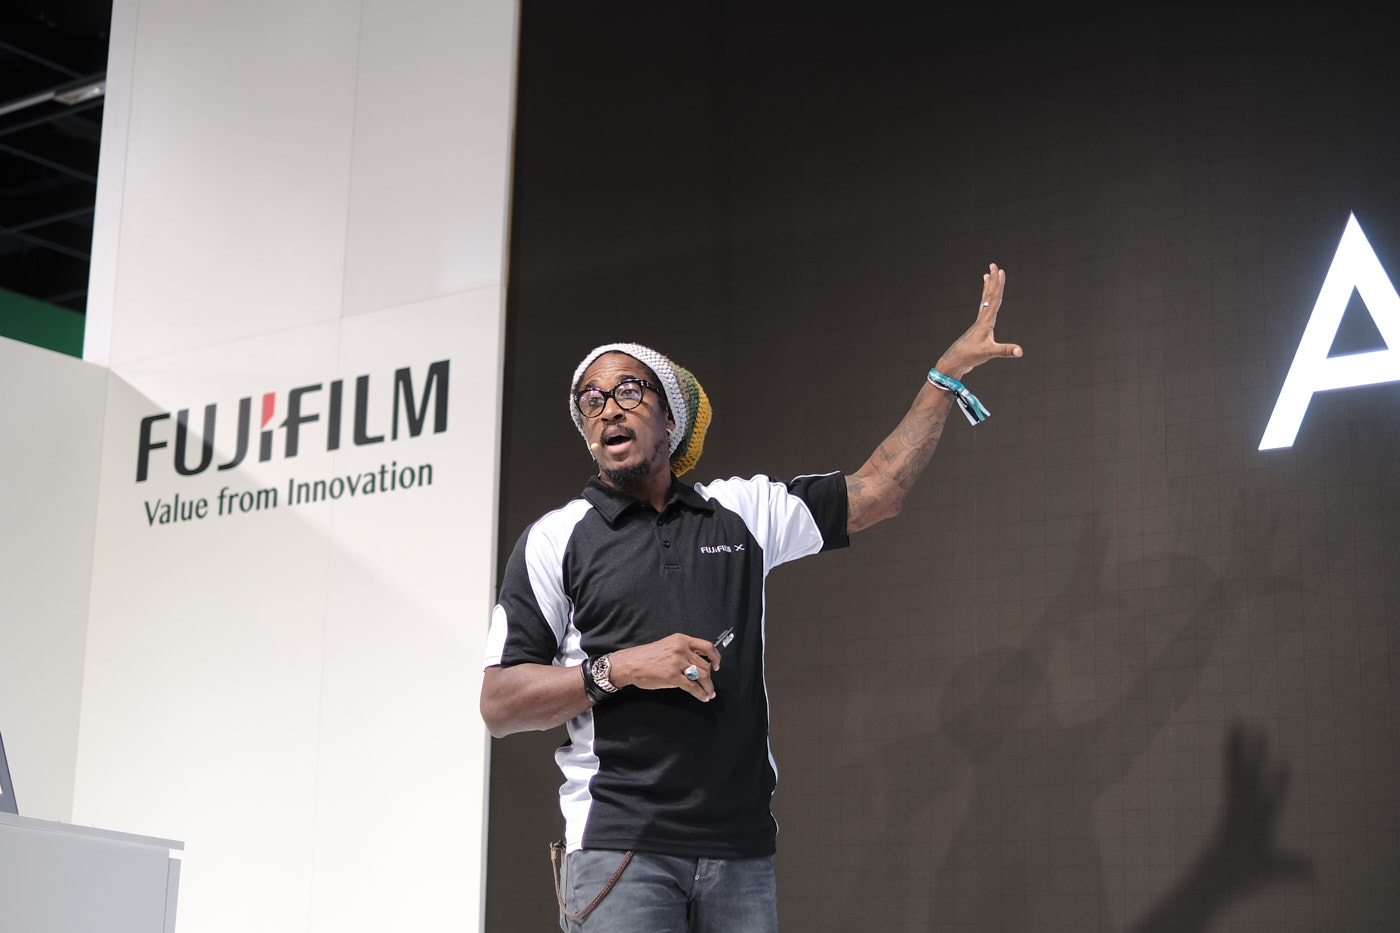 Rudy Roye  on the Fujifilm stage